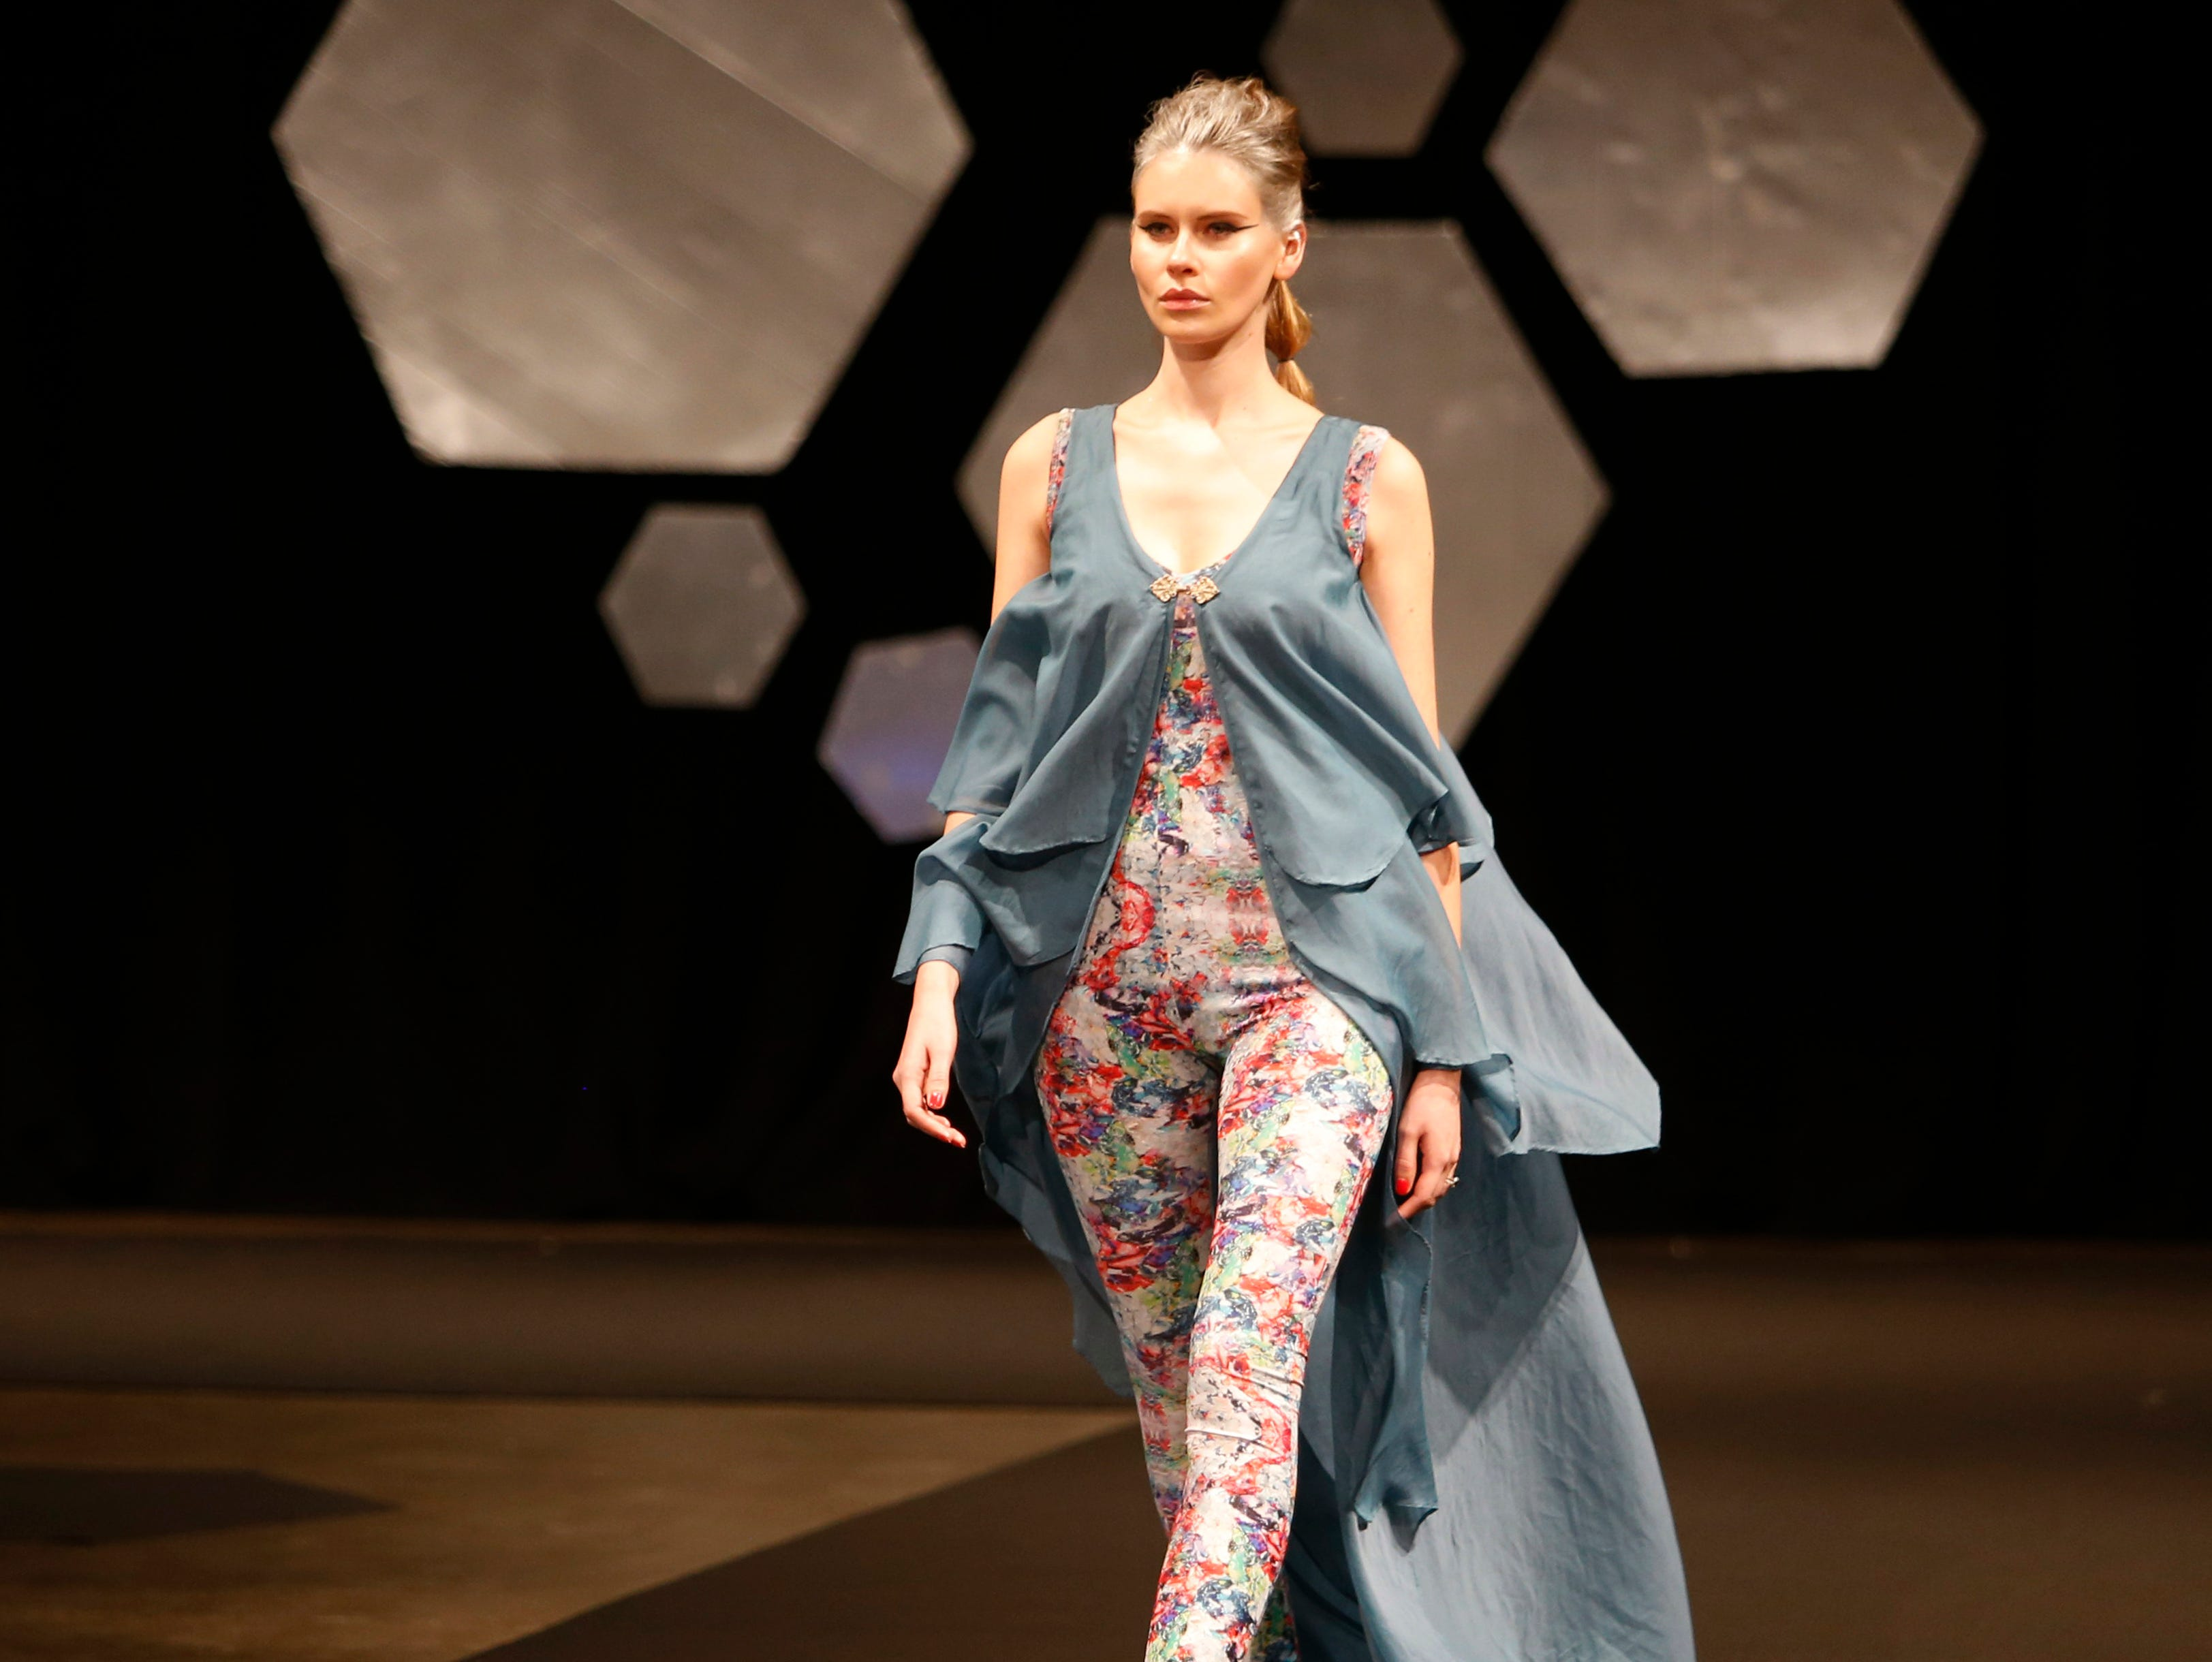 Designs from the collection of Marist College Fashion Department senior Kierston Litton during the 33rd Marist College Silver Needle Runway Show on May 10, 2019.